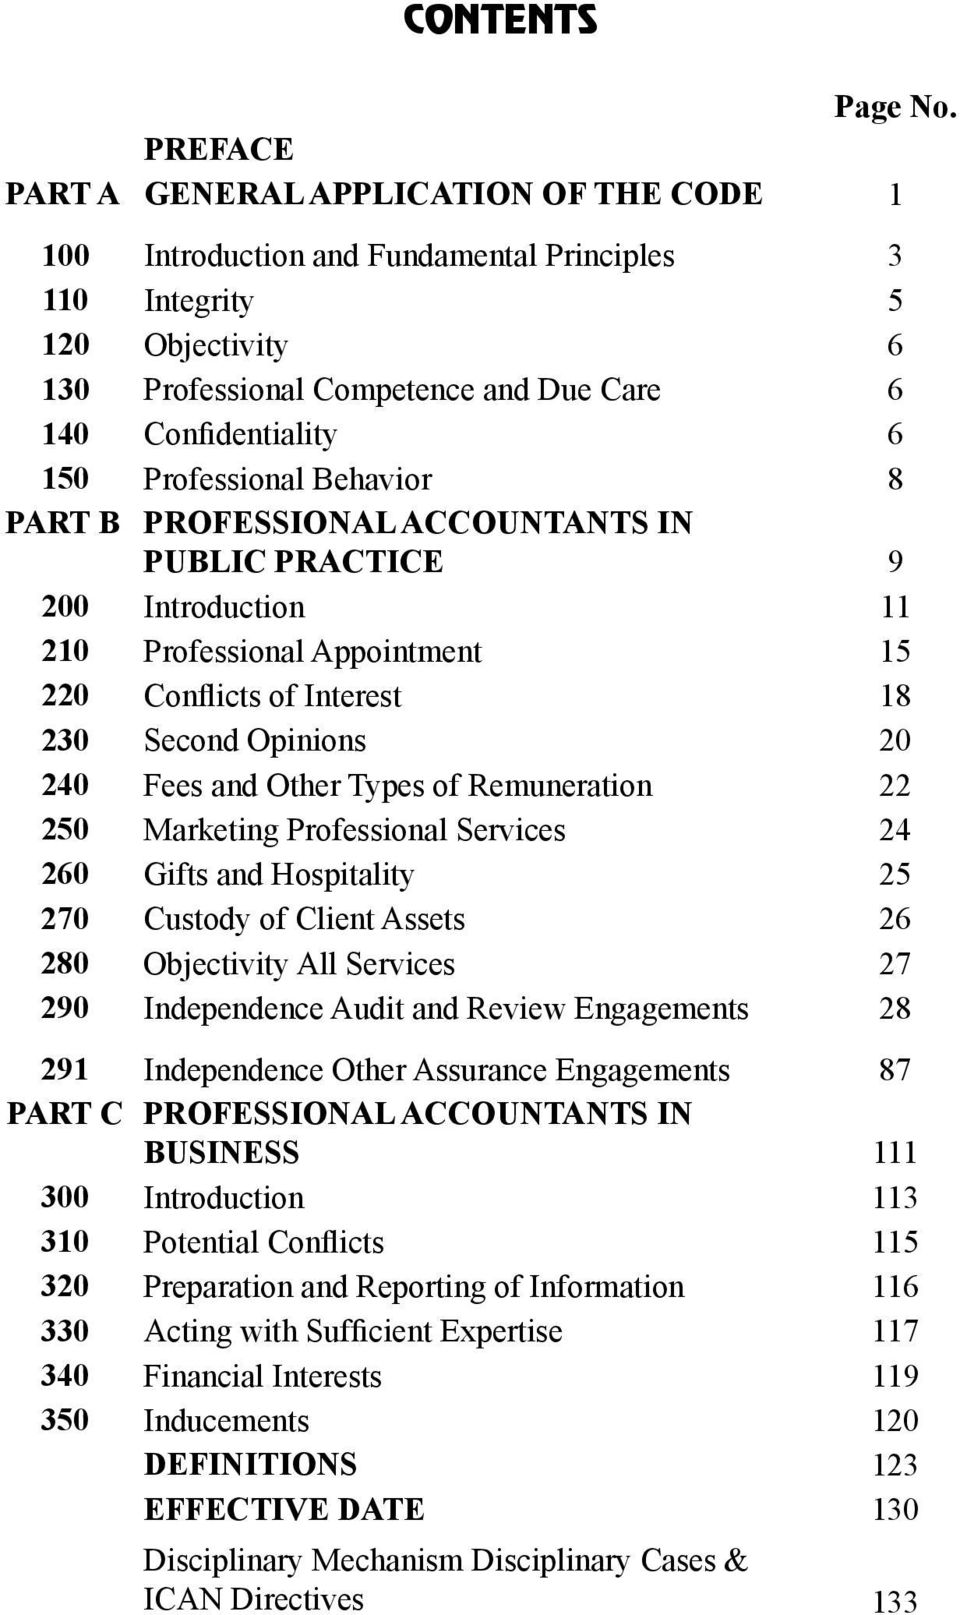 Professional Behavior 8 PART B PROFESSIONAL ACCOUNTANTS IN PUBLIC PRACTICE 9 200 Introduction 11 210 Professional Appointment 15 220 Conflicts of Interest 18 230 Second Opinions 20 240 Fees and Other